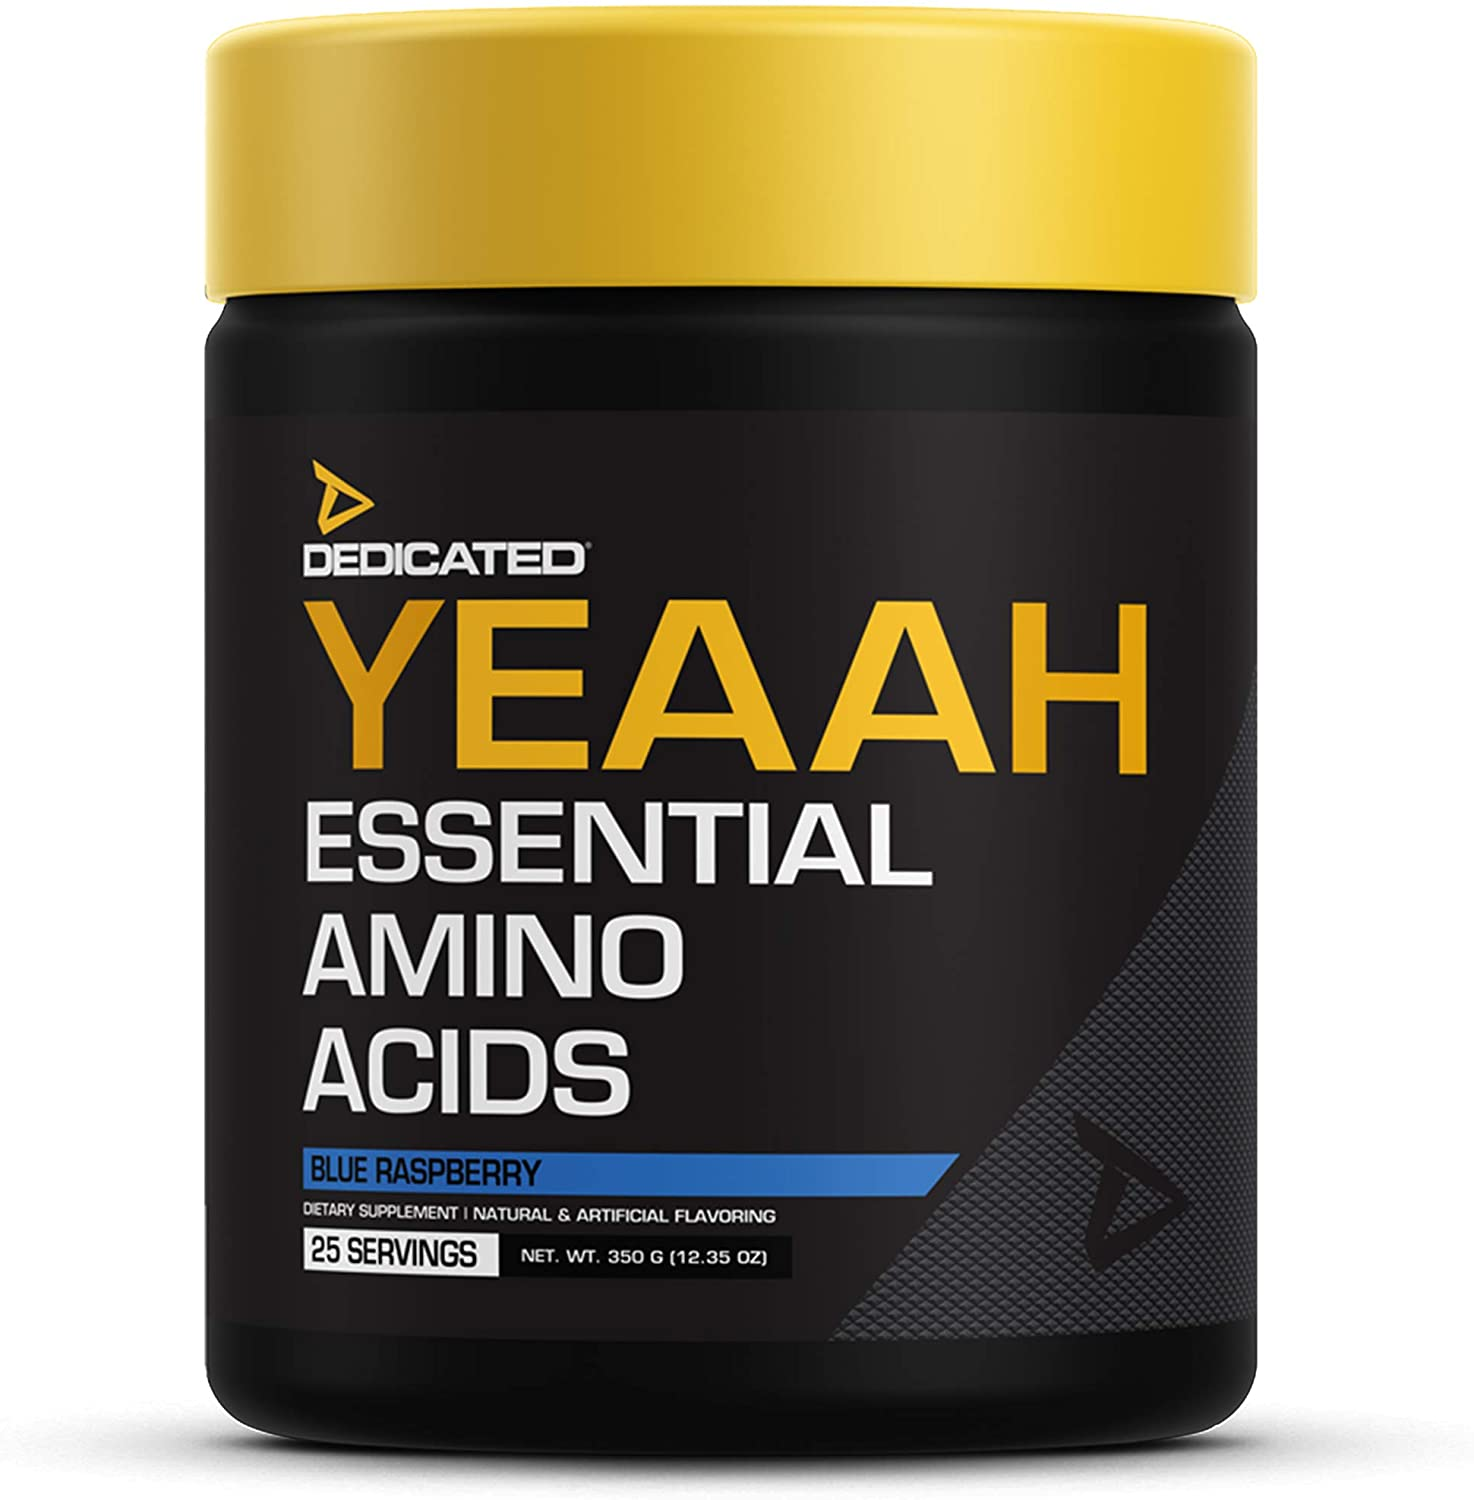 DEDICATED Nutrition YEAAH EAAs | Essential Amino Acids, Branched Chain Amino Acids, Recovery, Muscle Growth, Pump, Electrolytes, Intra-Workout | Citrulline, Leuice, Taurine (Blue Raspberry)